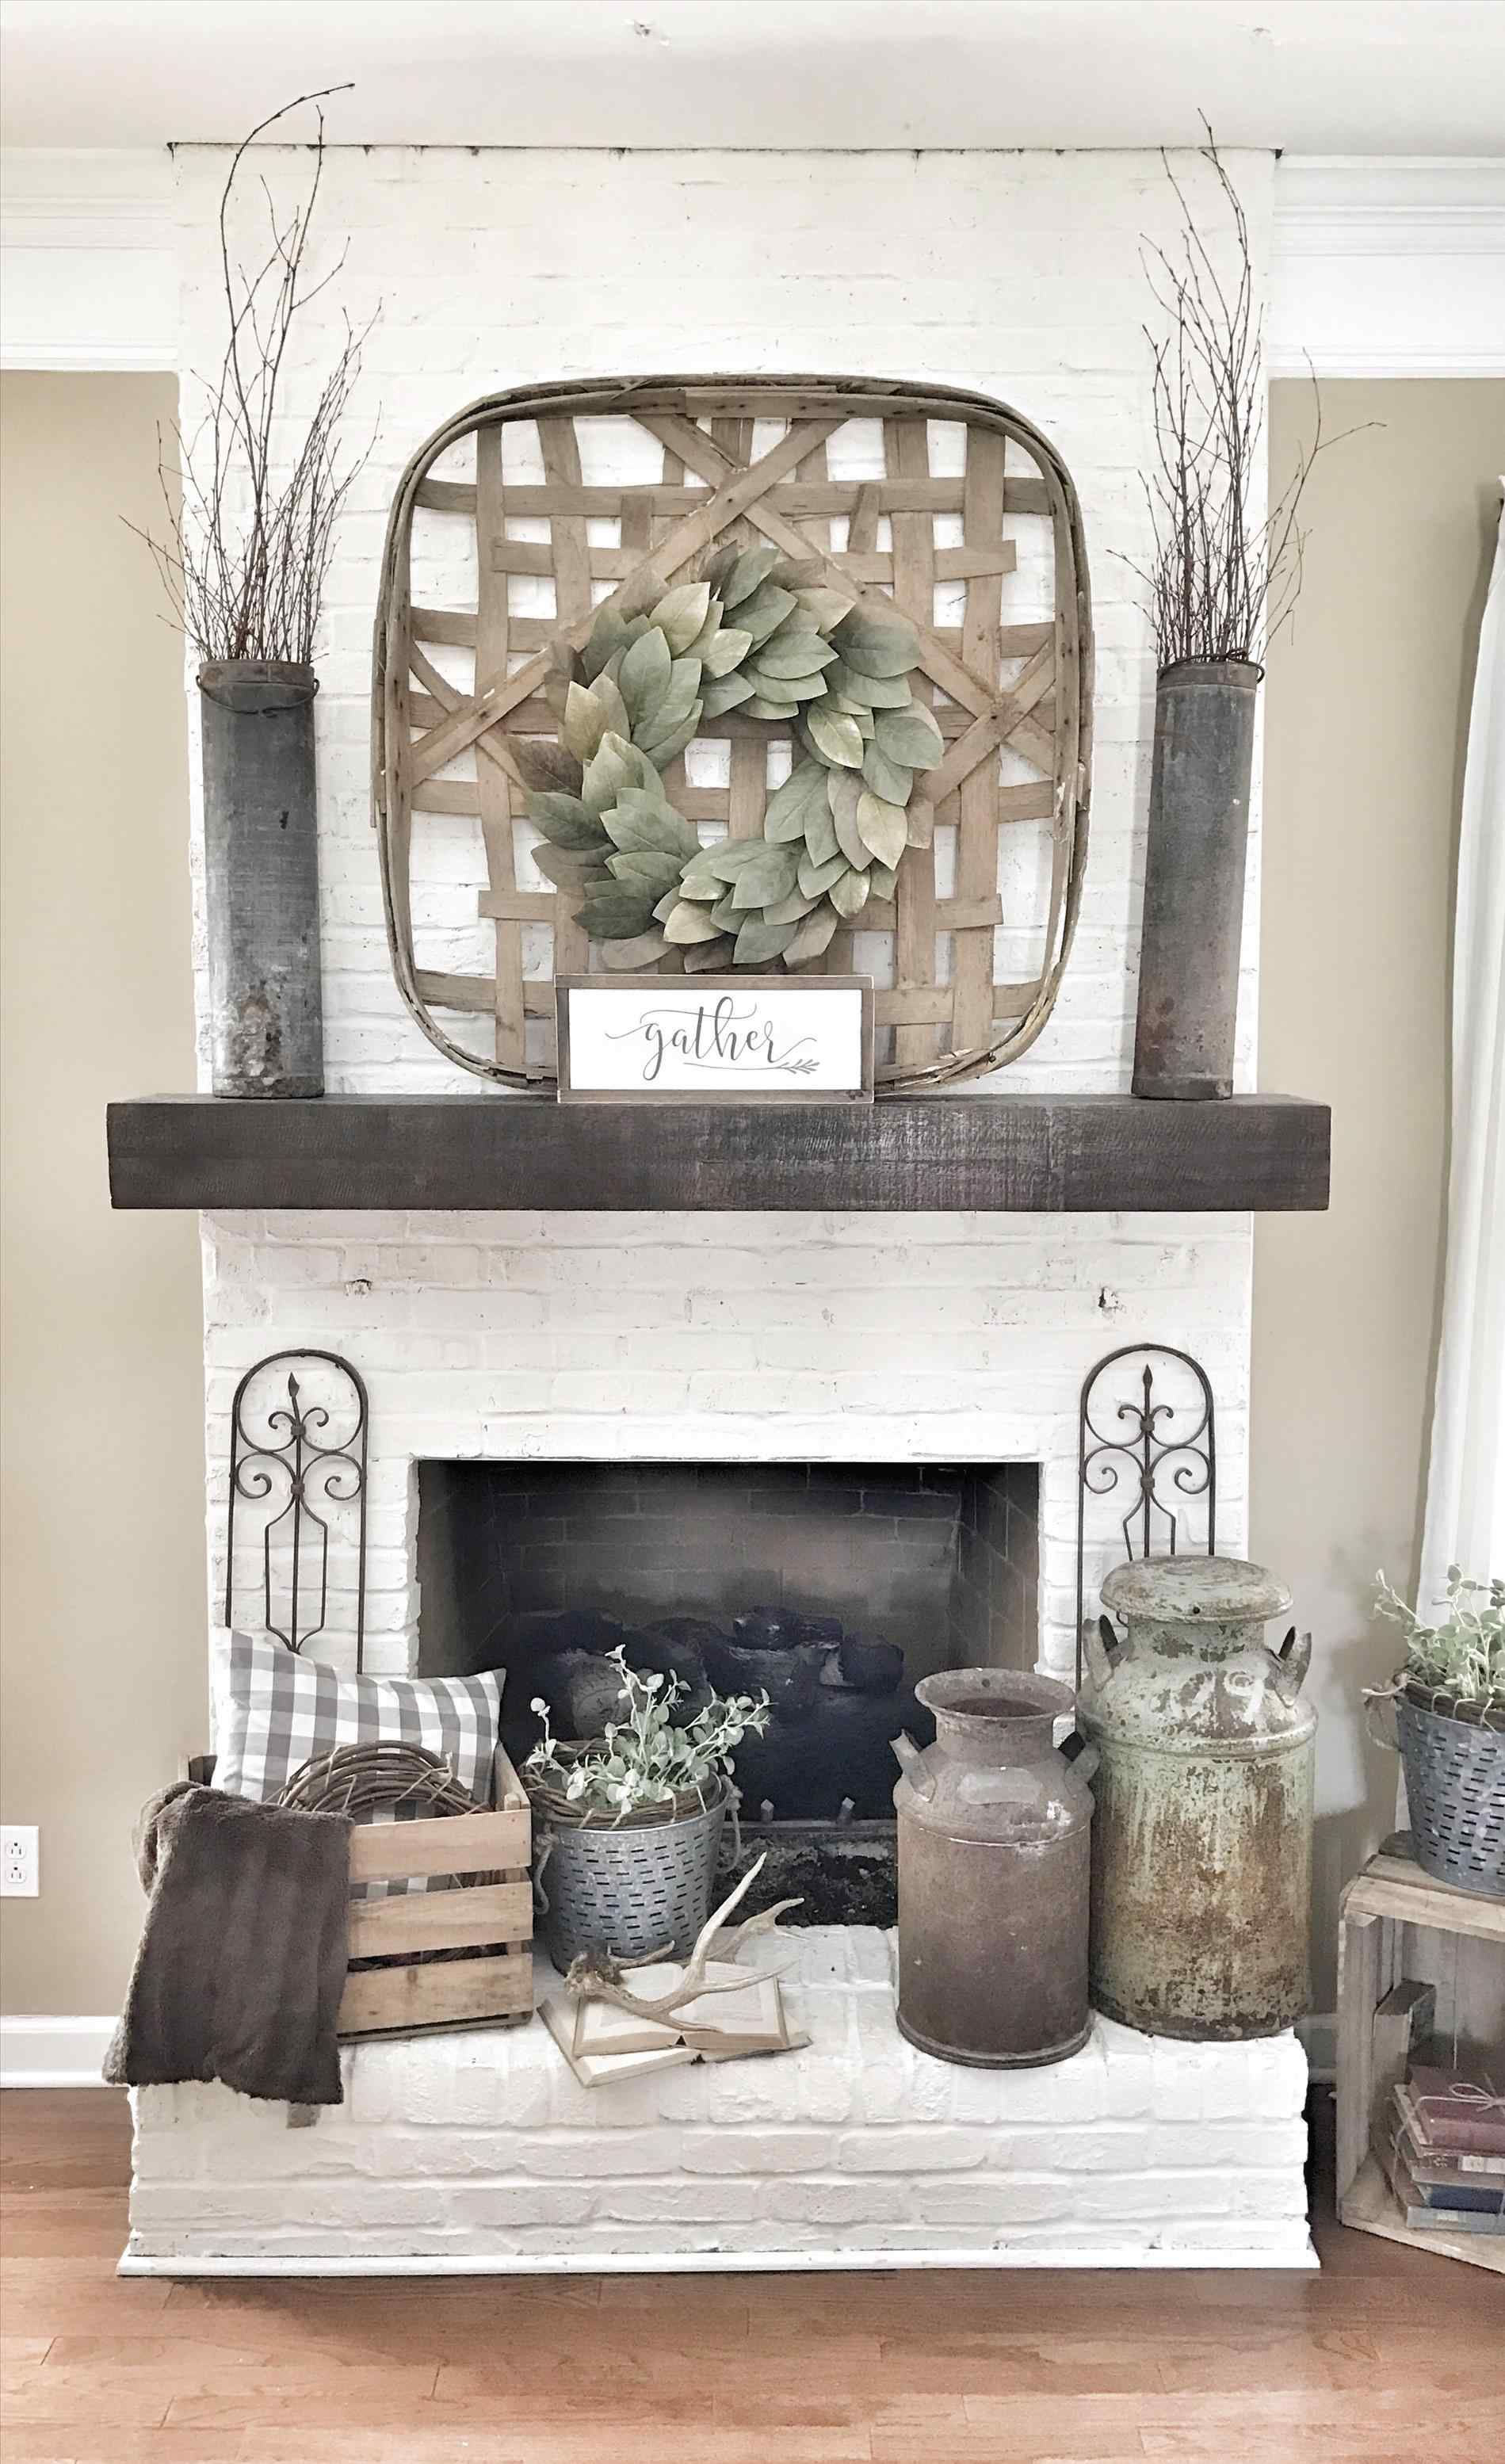 The Epitome Of California Cool Fireplace Design Painted White Brick Fixer Upper Style Ig Modern Farmhouse Shiplap